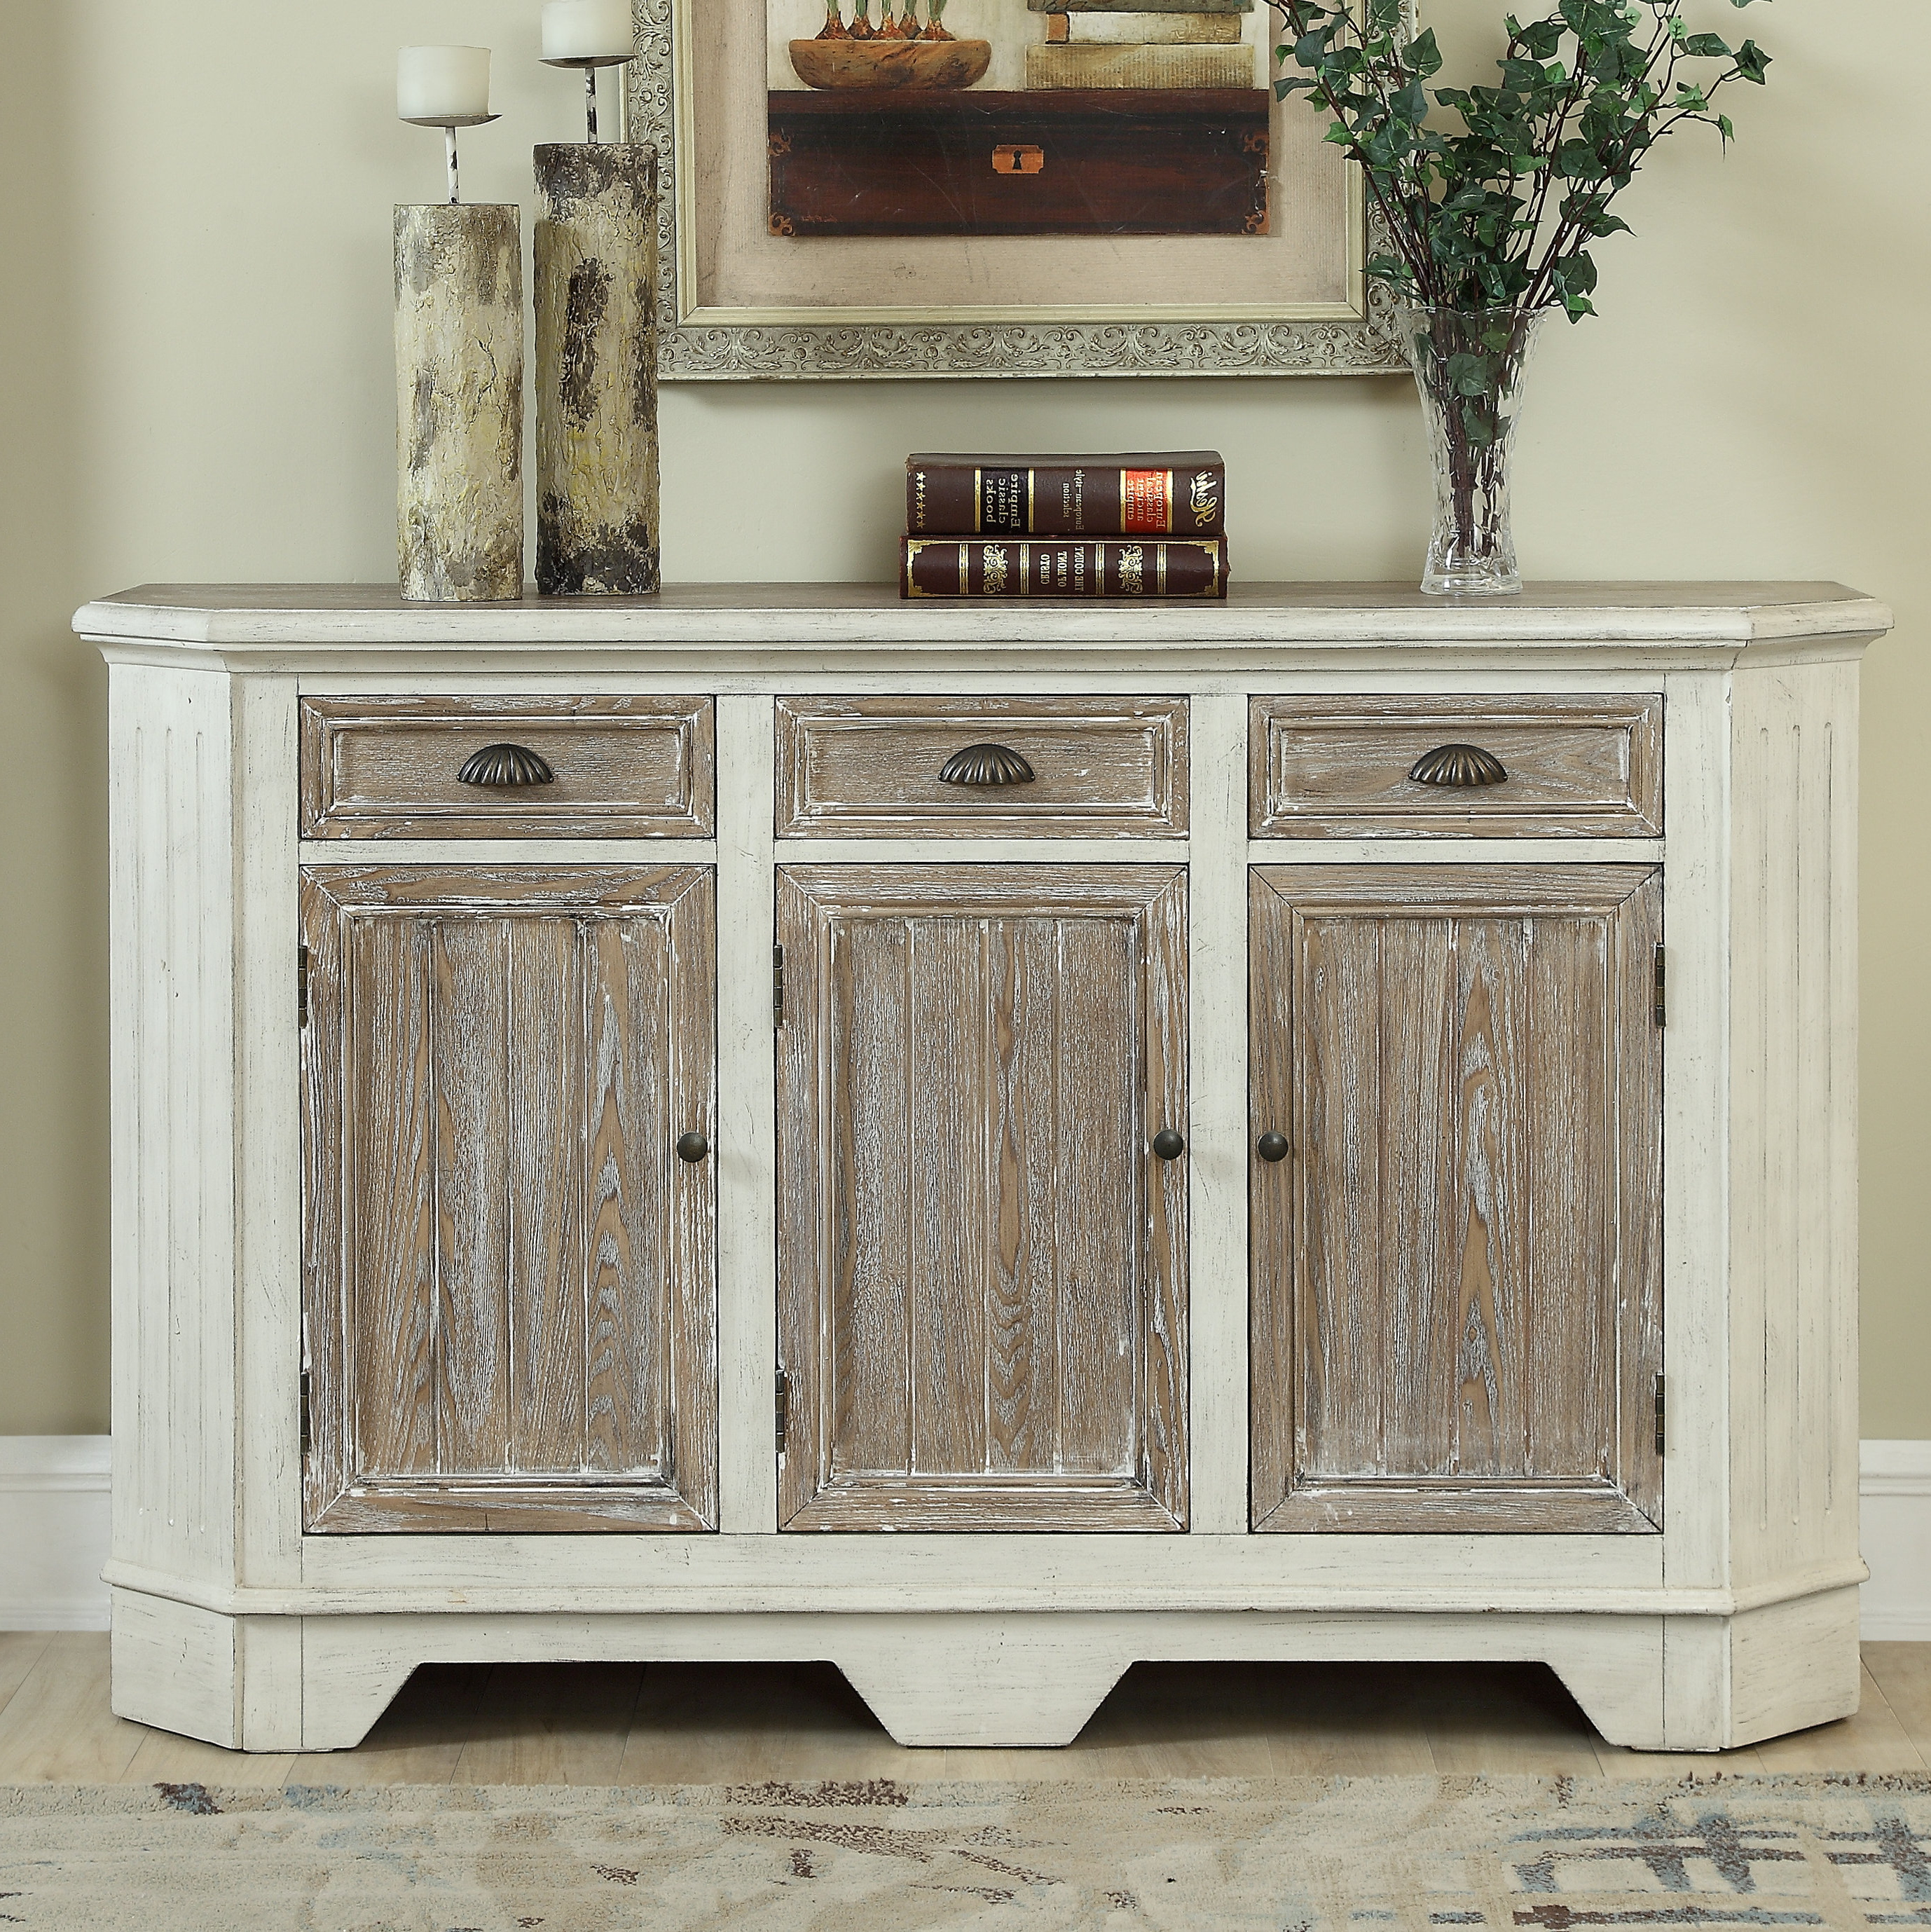 4 Door 3 Drawer White Wash Sideboards Pertaining To Most Current Highland Dunes Funkhouser 3 Door 3 Drawer Sideboard & Reviews (View 15 of 20)